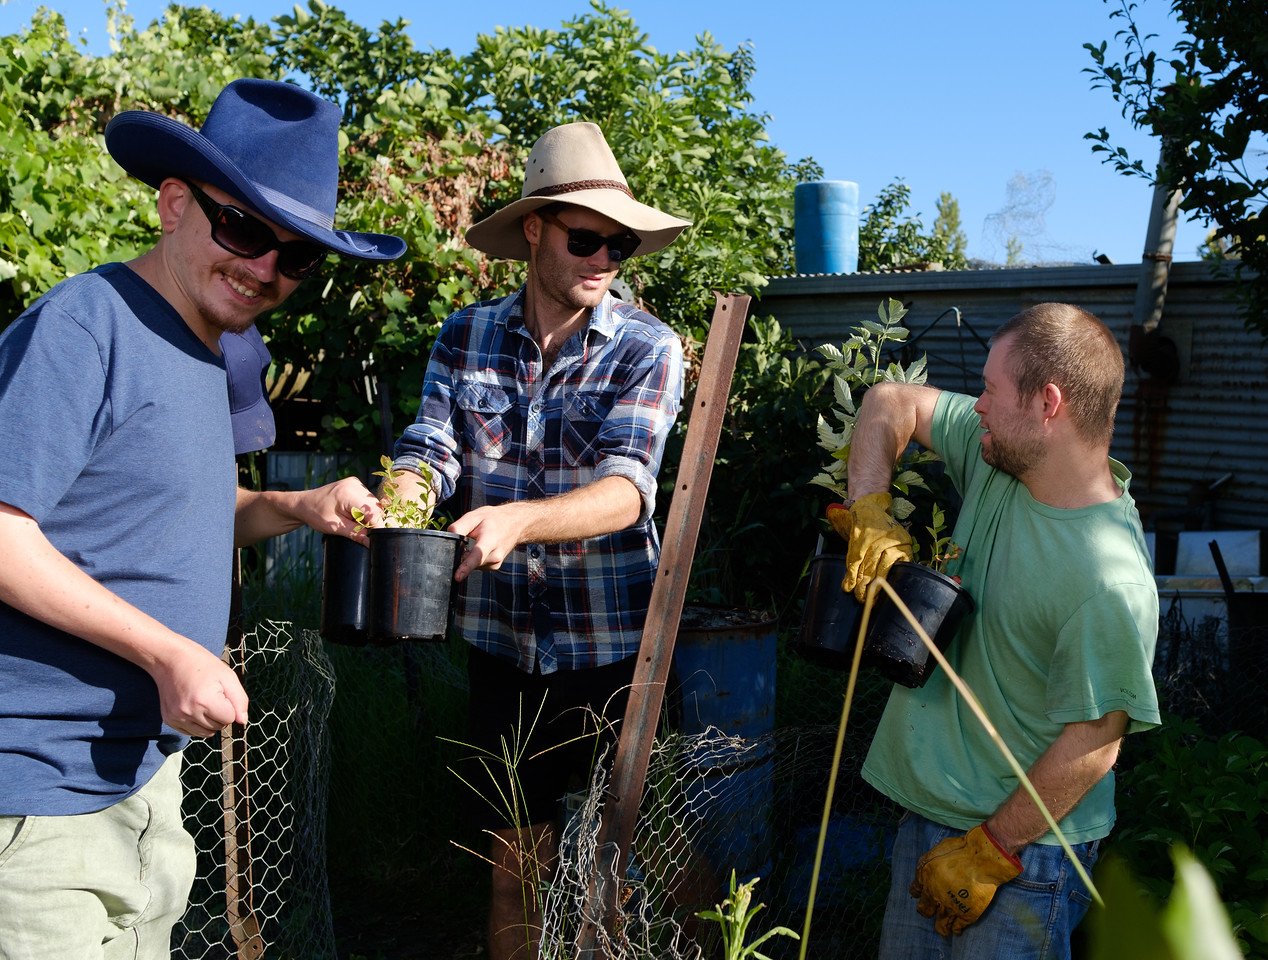 Men Working on Farm with their Support Worker